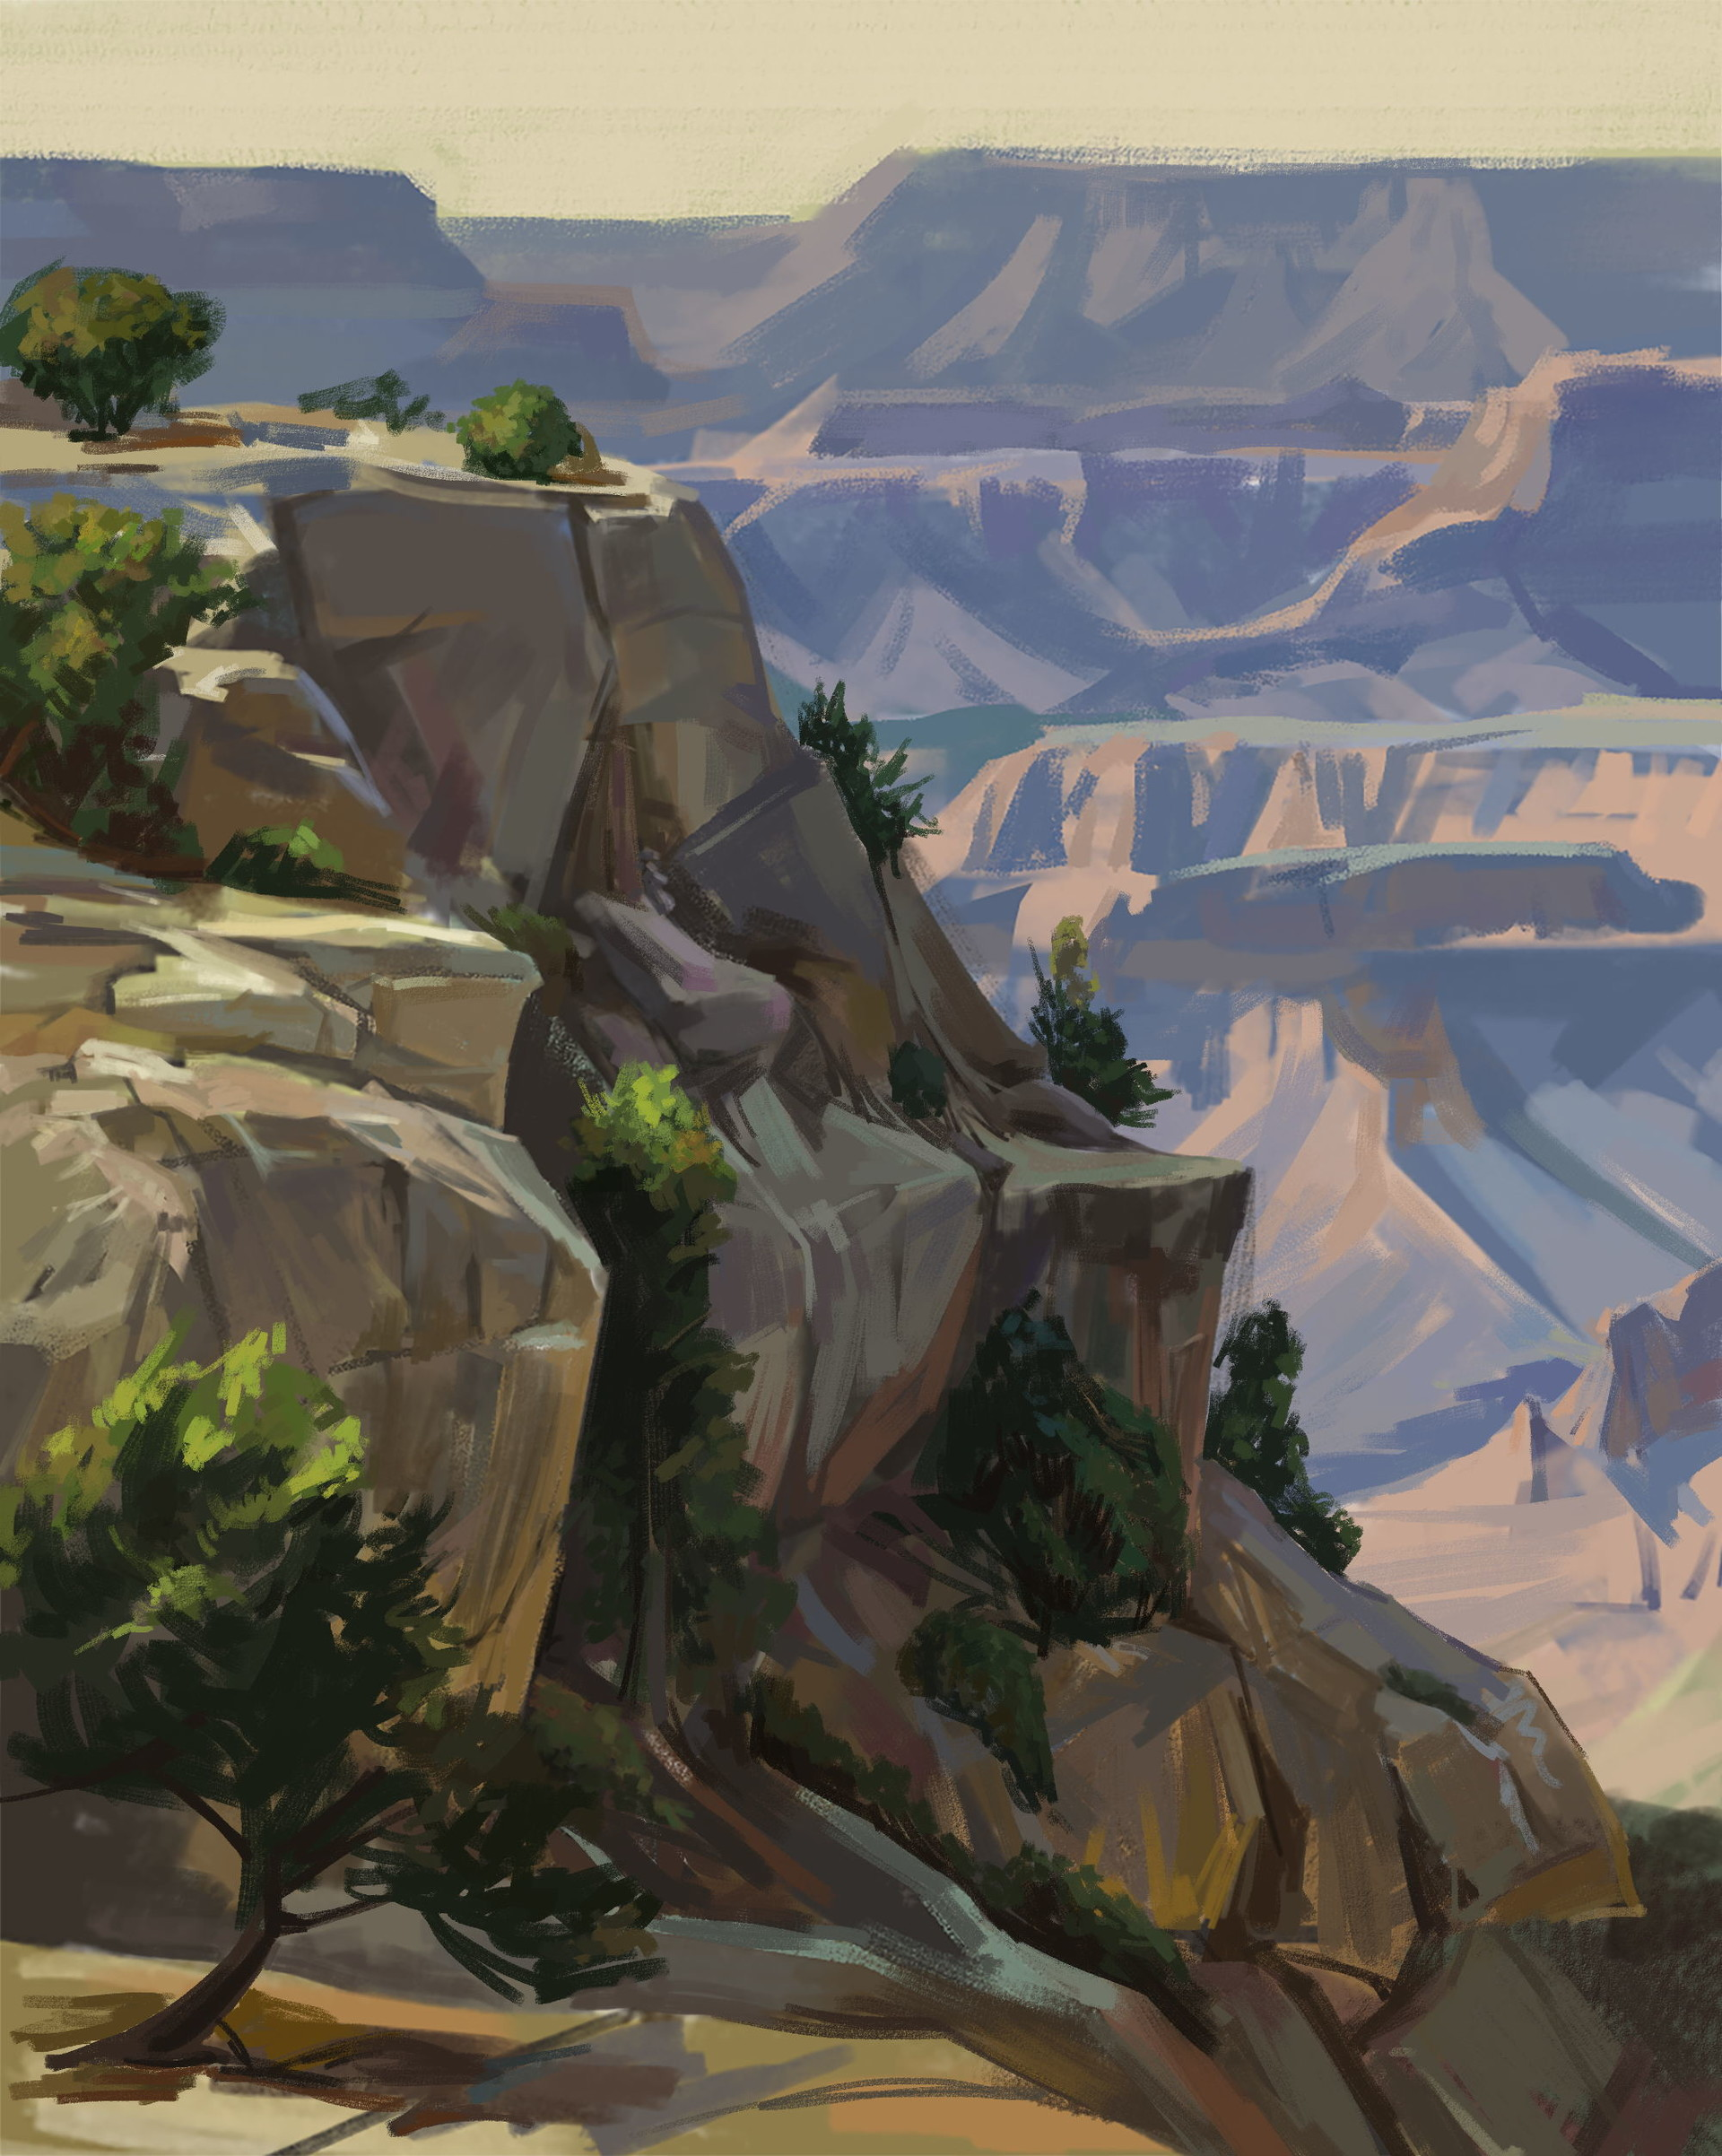 138026 download wallpaper Rocks, Canyon, Art, Mountains, Landscape screensavers and pictures for free